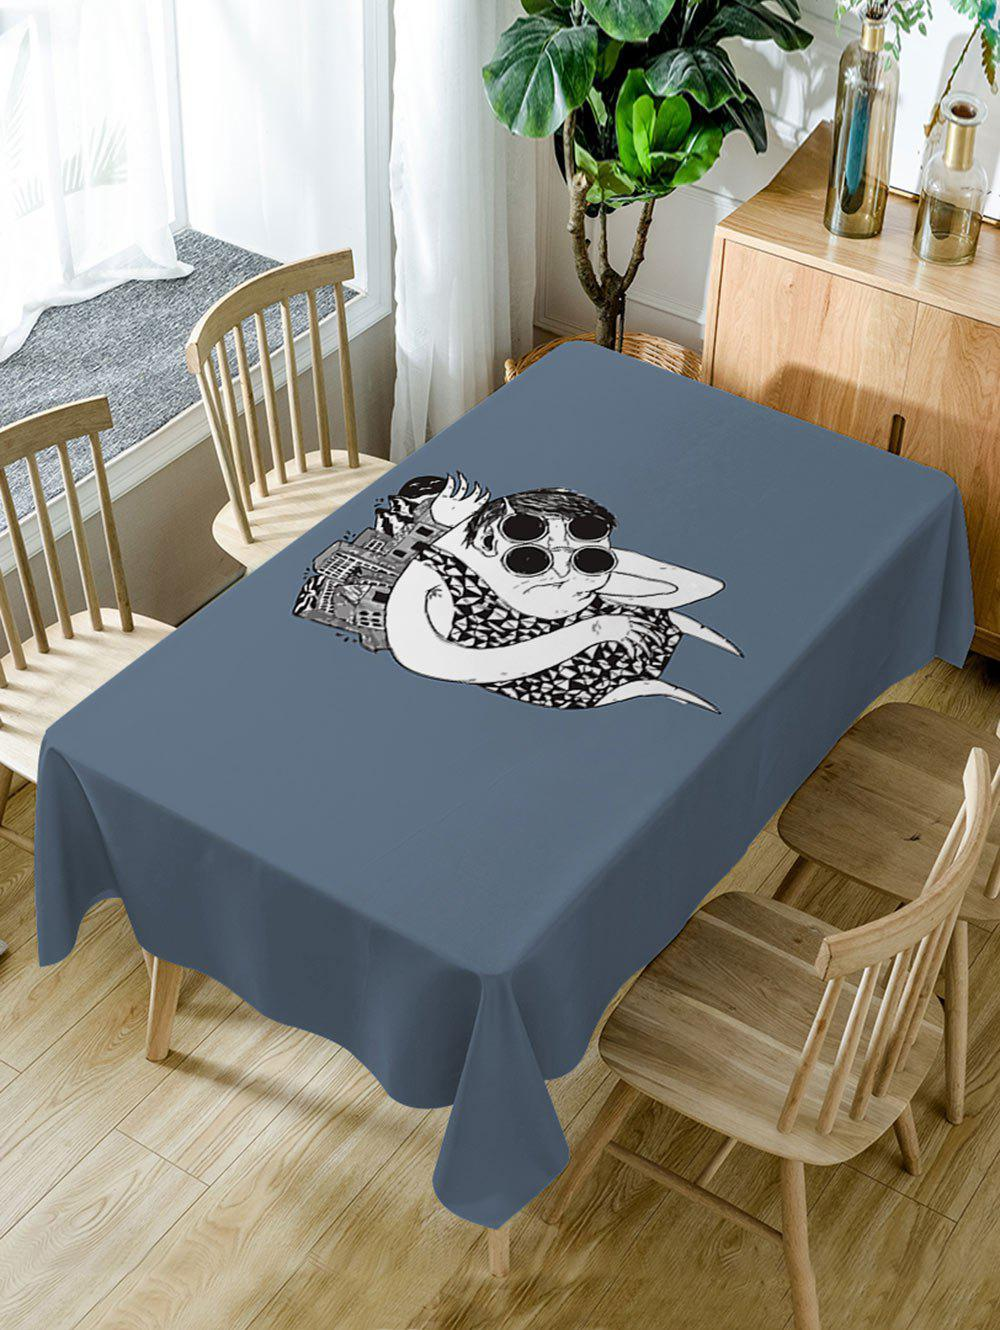 Hot Cartoon Print Waterproof Dining Table Cloth